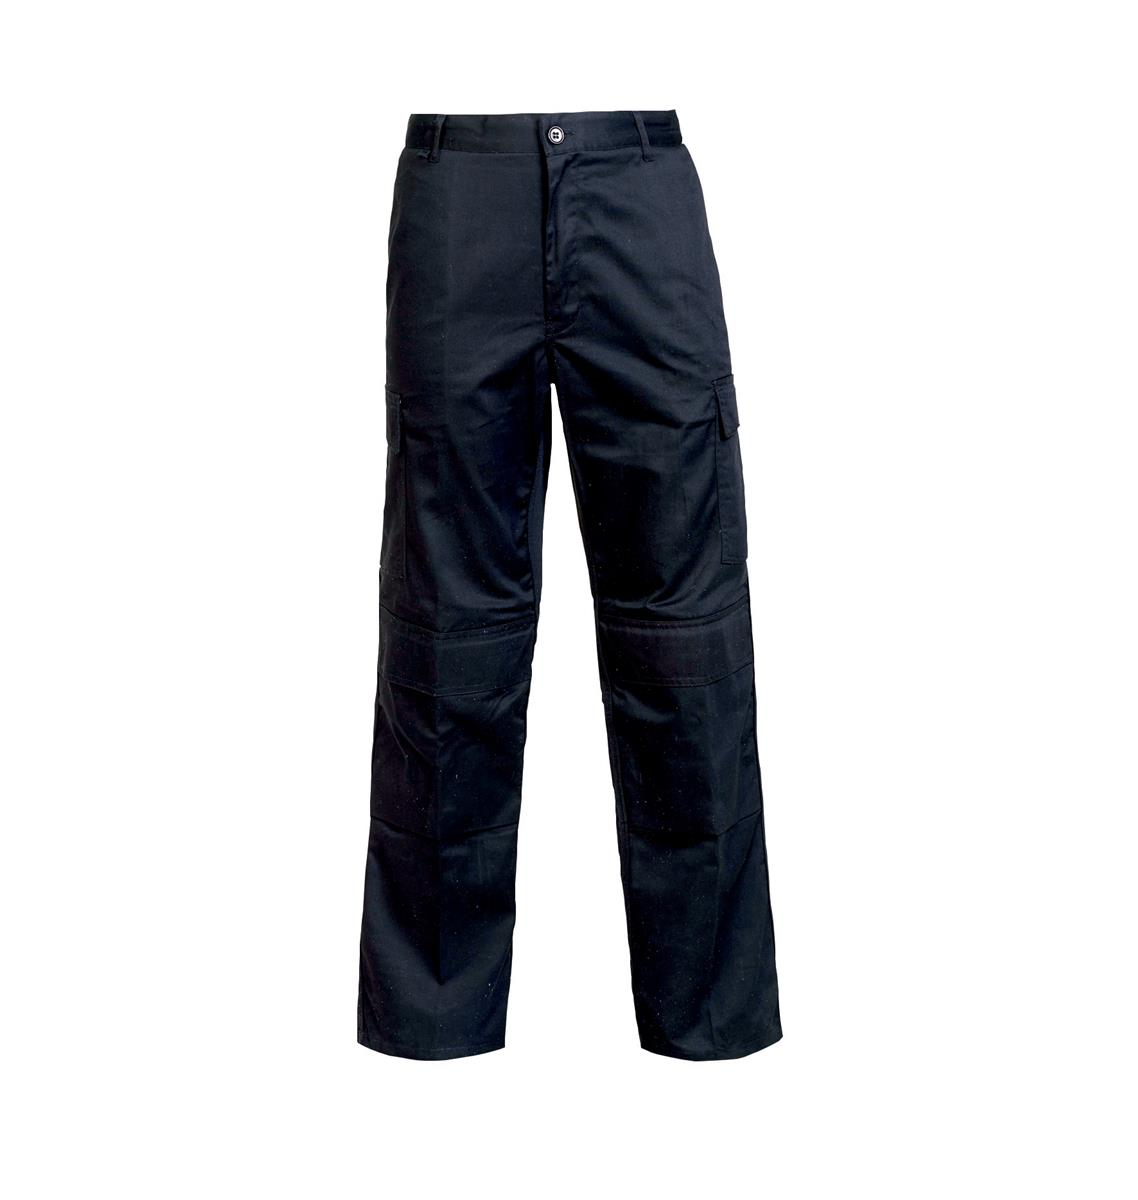 Combat Trousers Polycotton with Pockets 34in Regular Black Ref PCTHWBL34 *1-3 Days Lead Time*